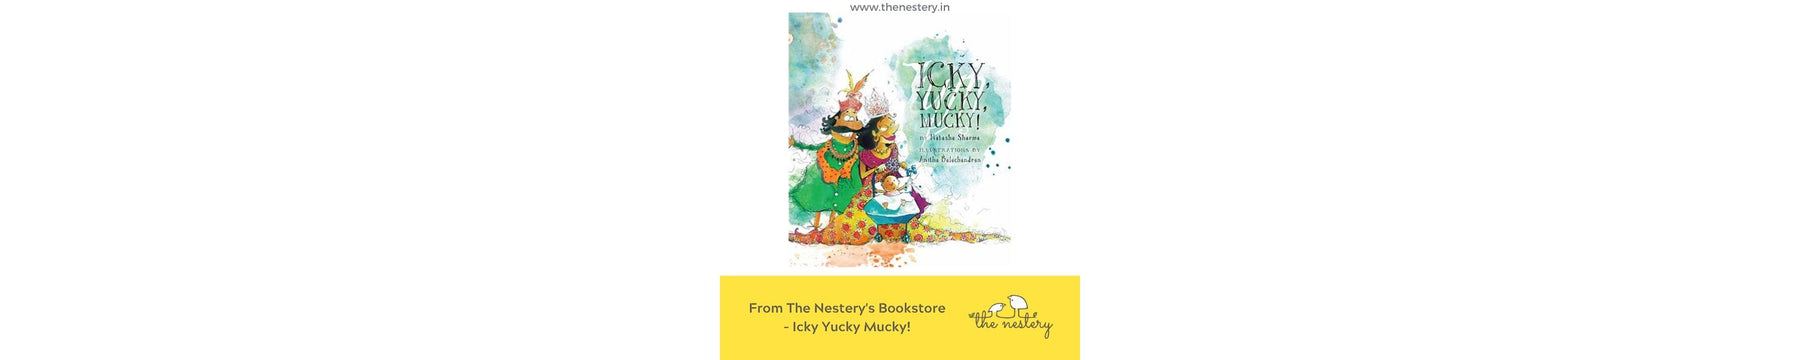 Book Review - Icky Yucky Mucky!